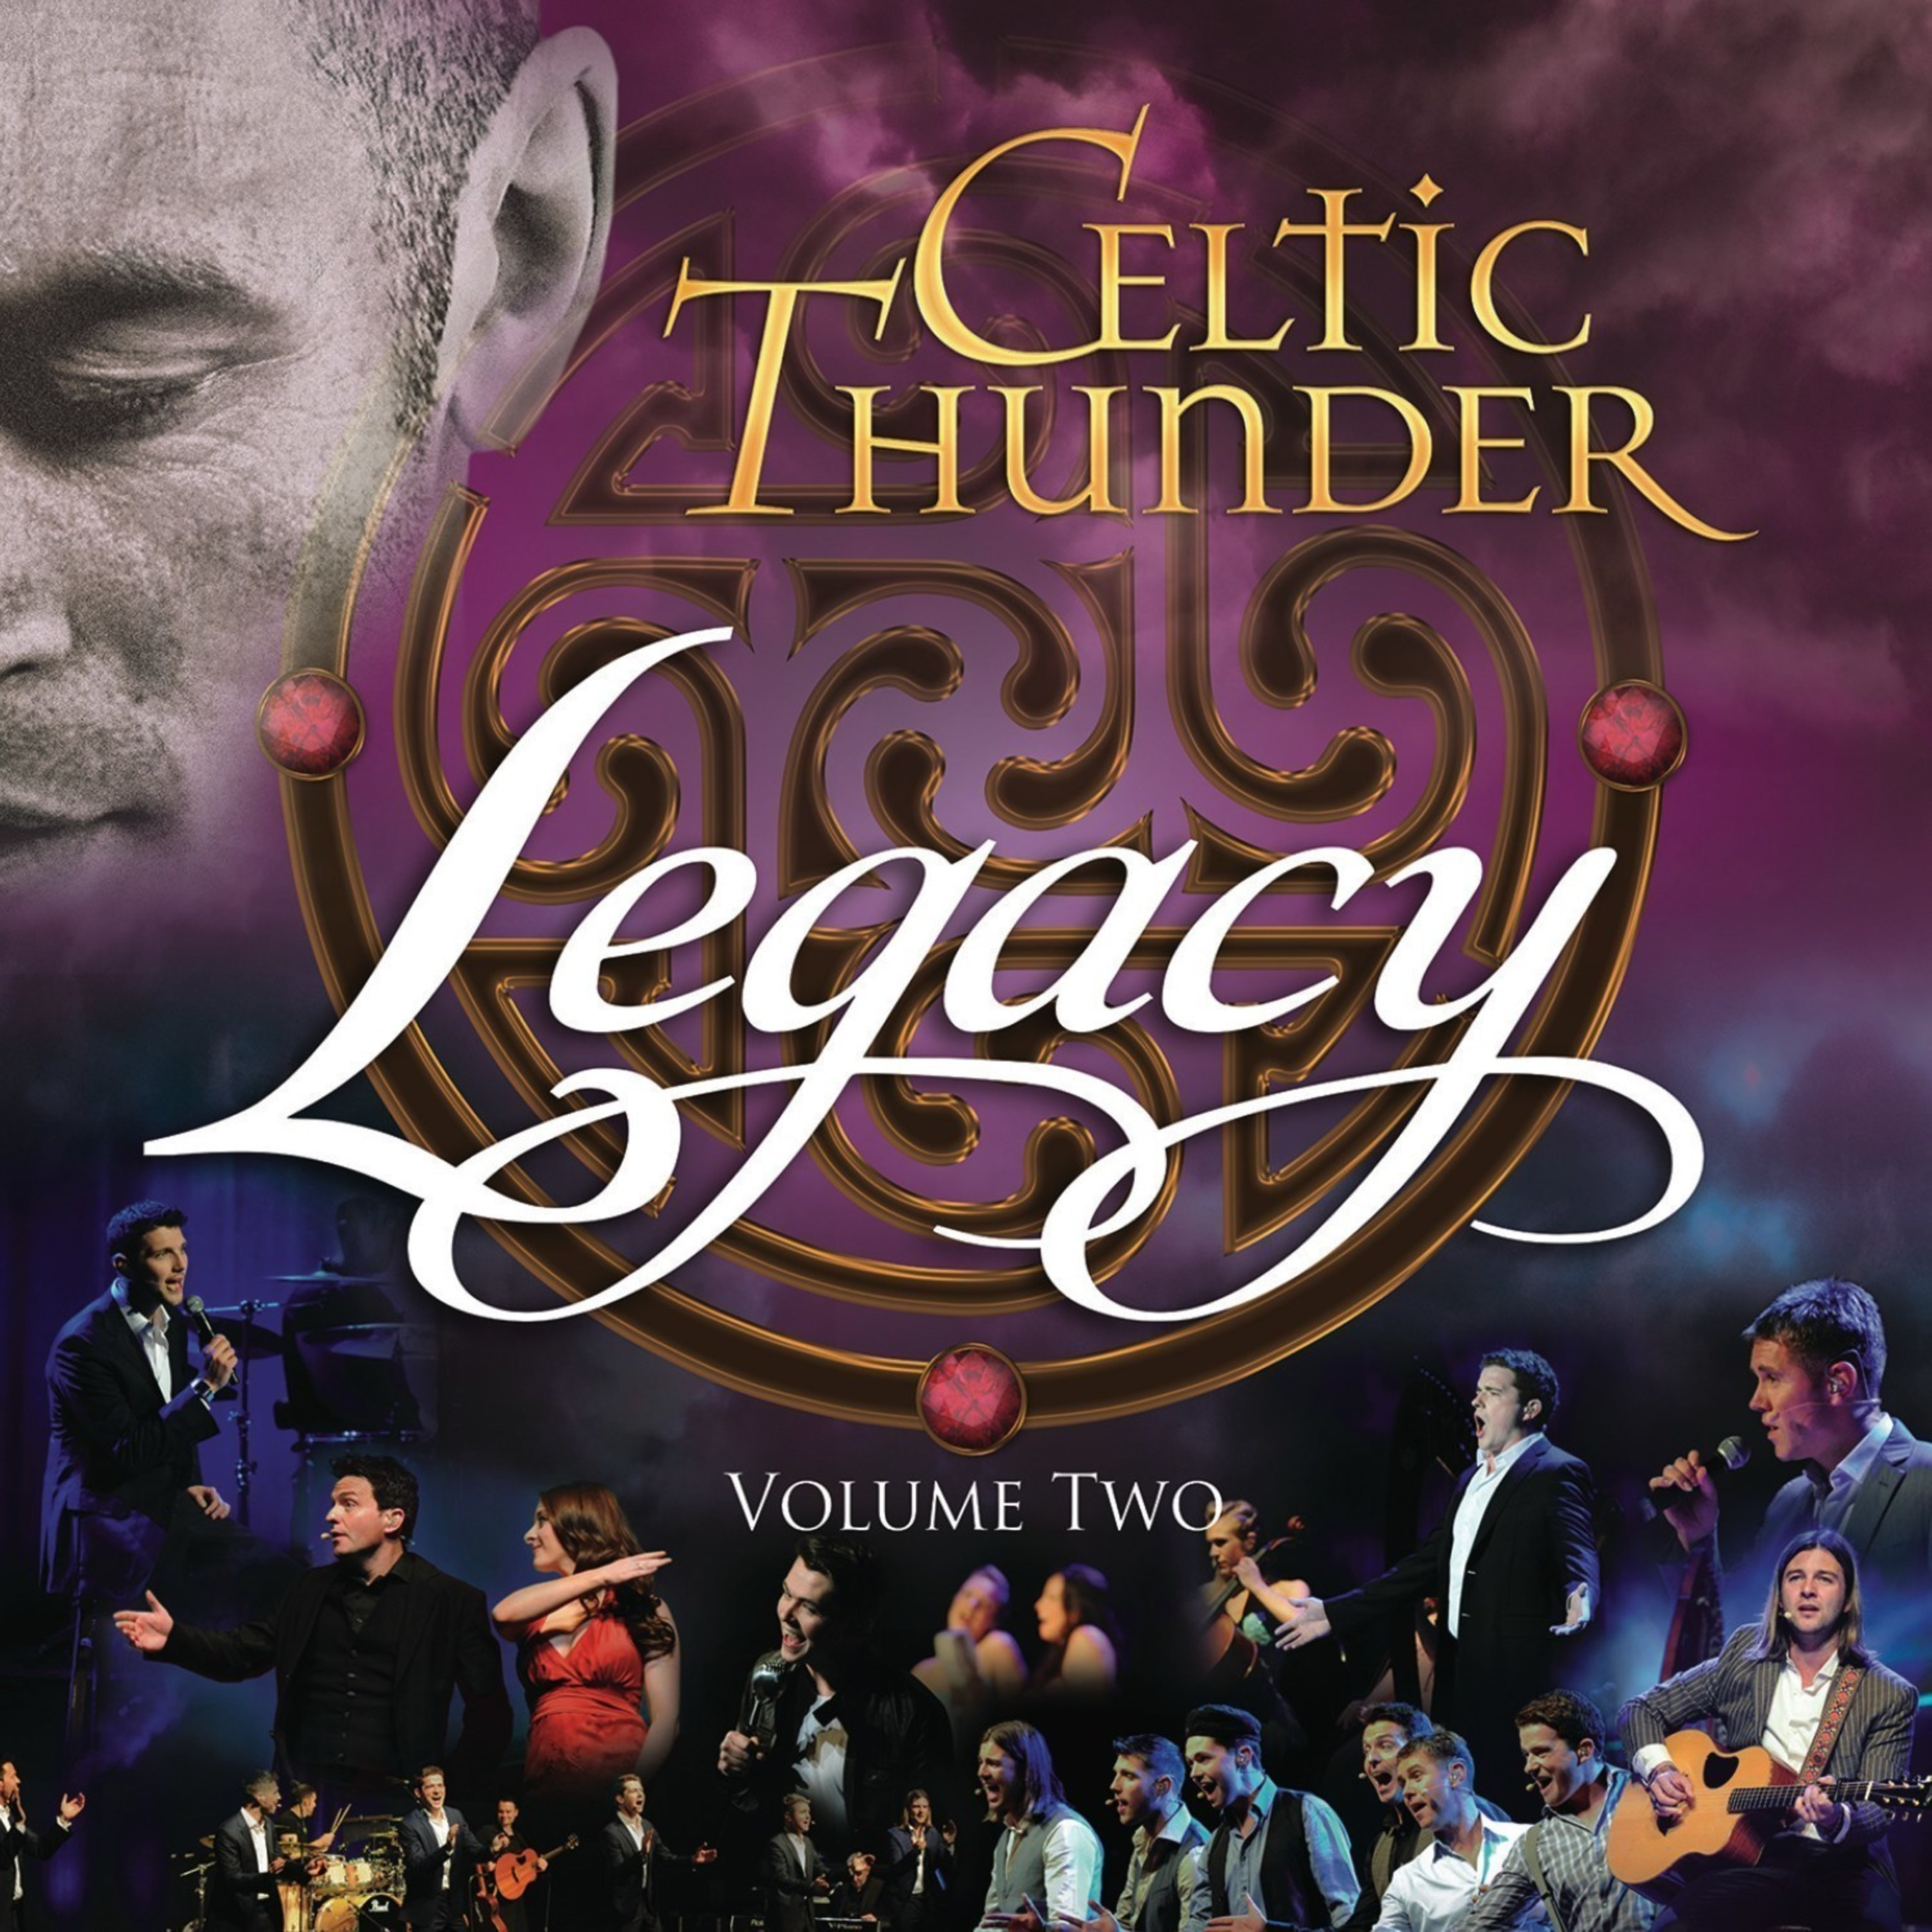 Legacy Recordings Presents Legacy, Volume Two, A New Collection of Performances from Celtic Thunder